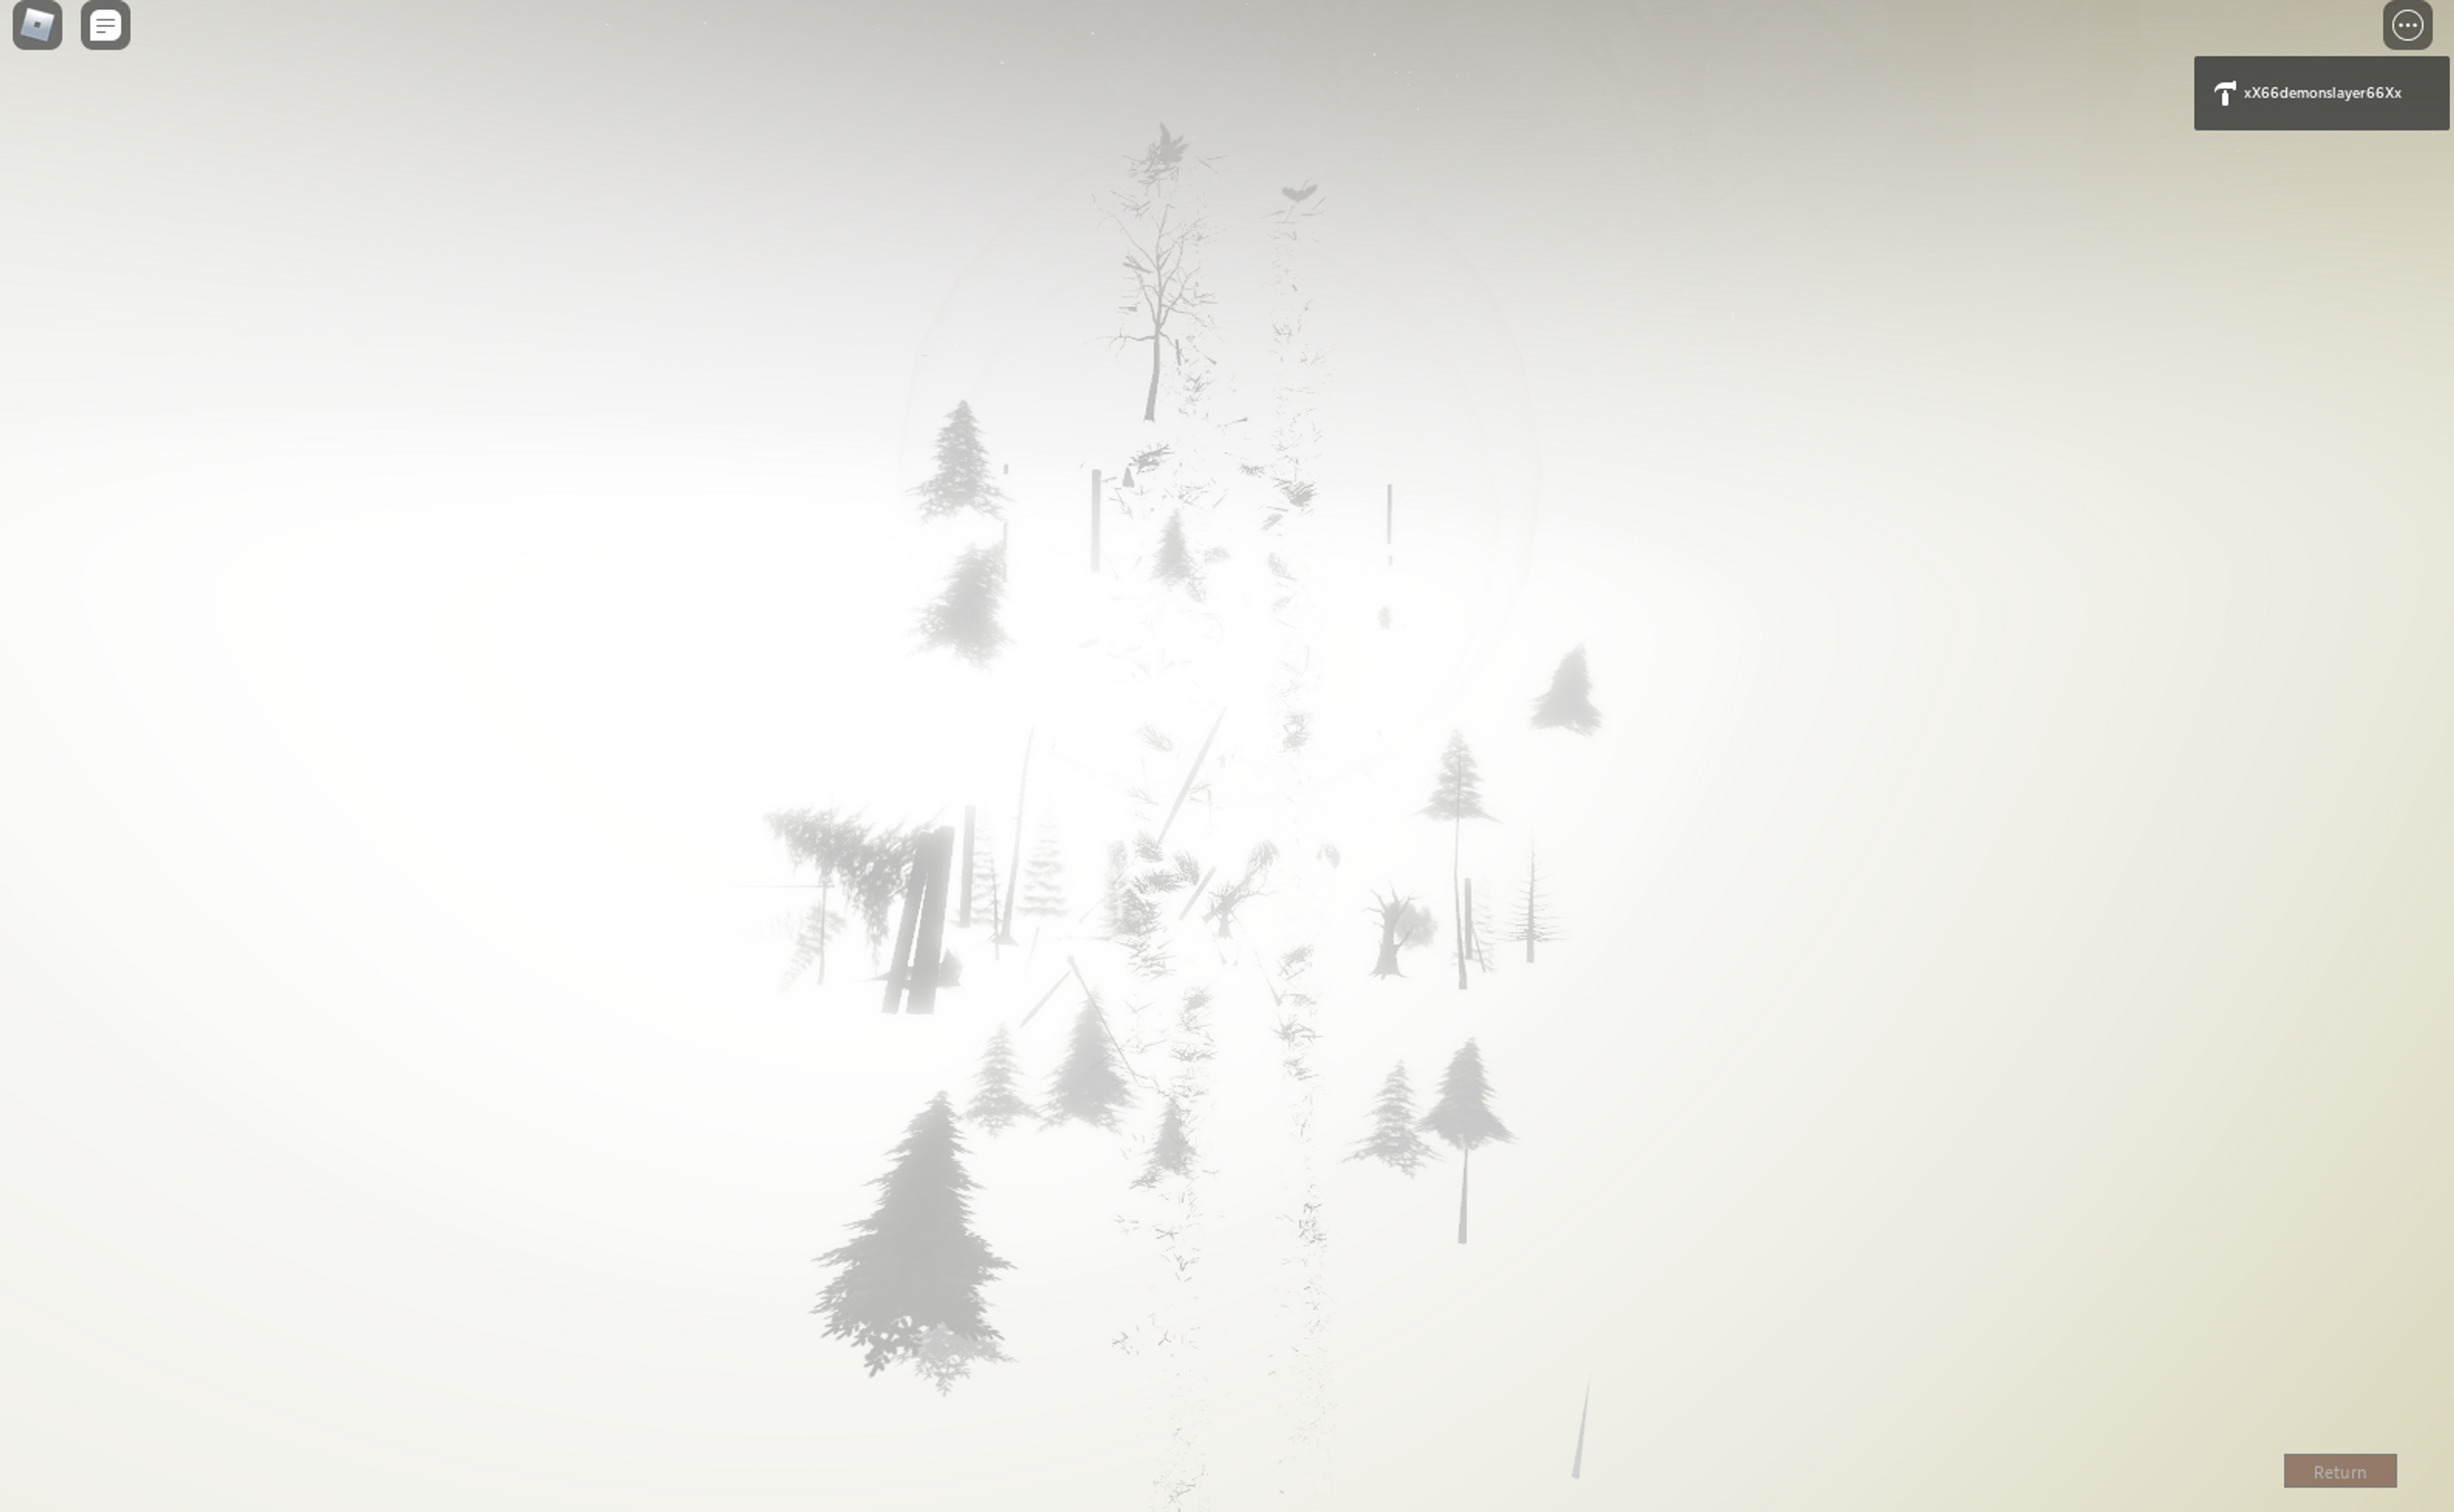 Silhouettes of trees fall into a bright fog.